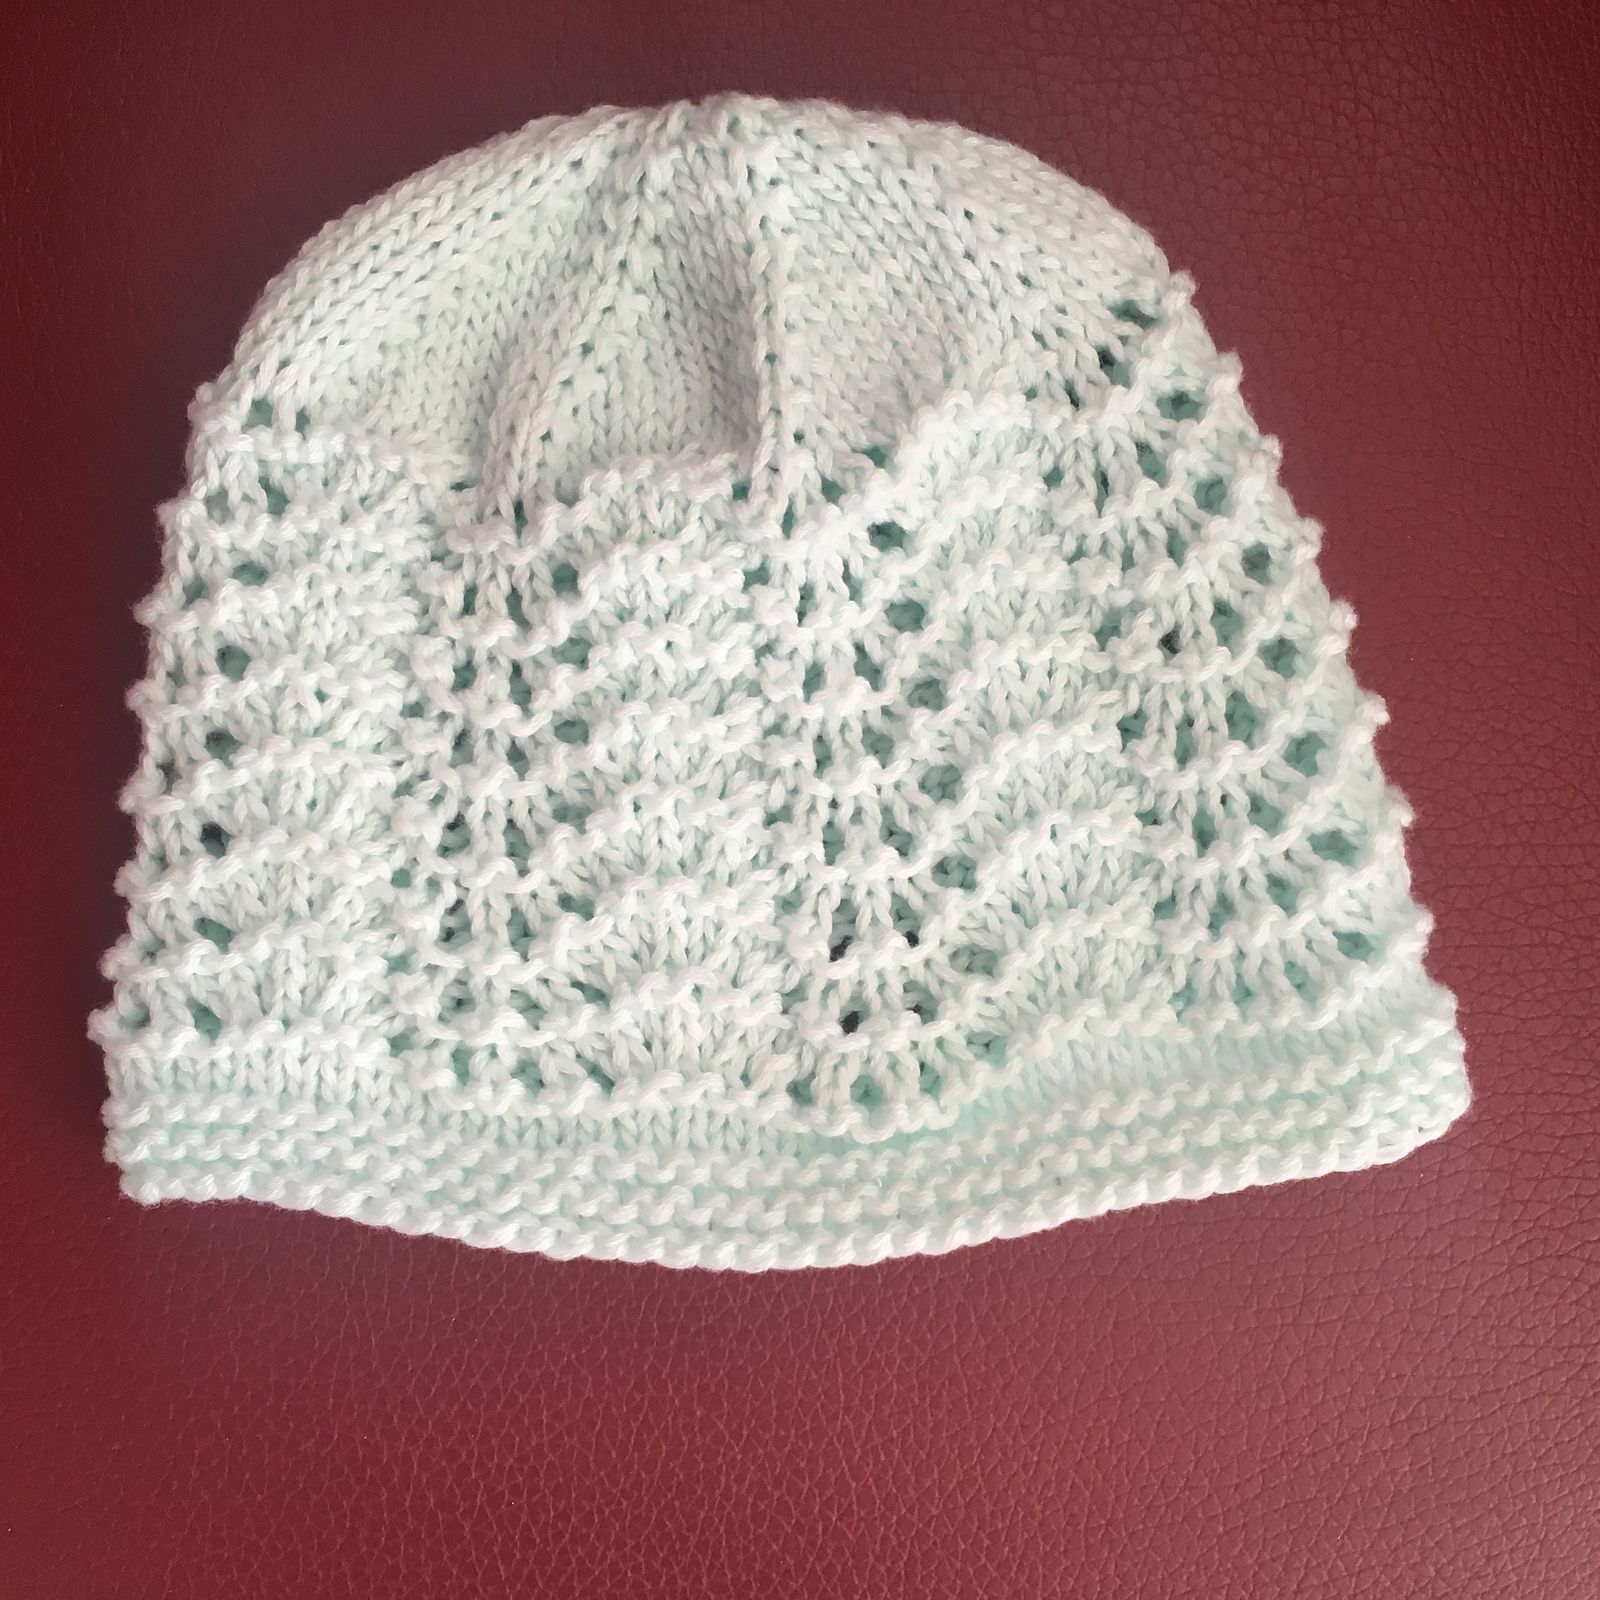 703a6b826fa0 Ravelry  Old Shale Lace Baby Hat by marianna mel